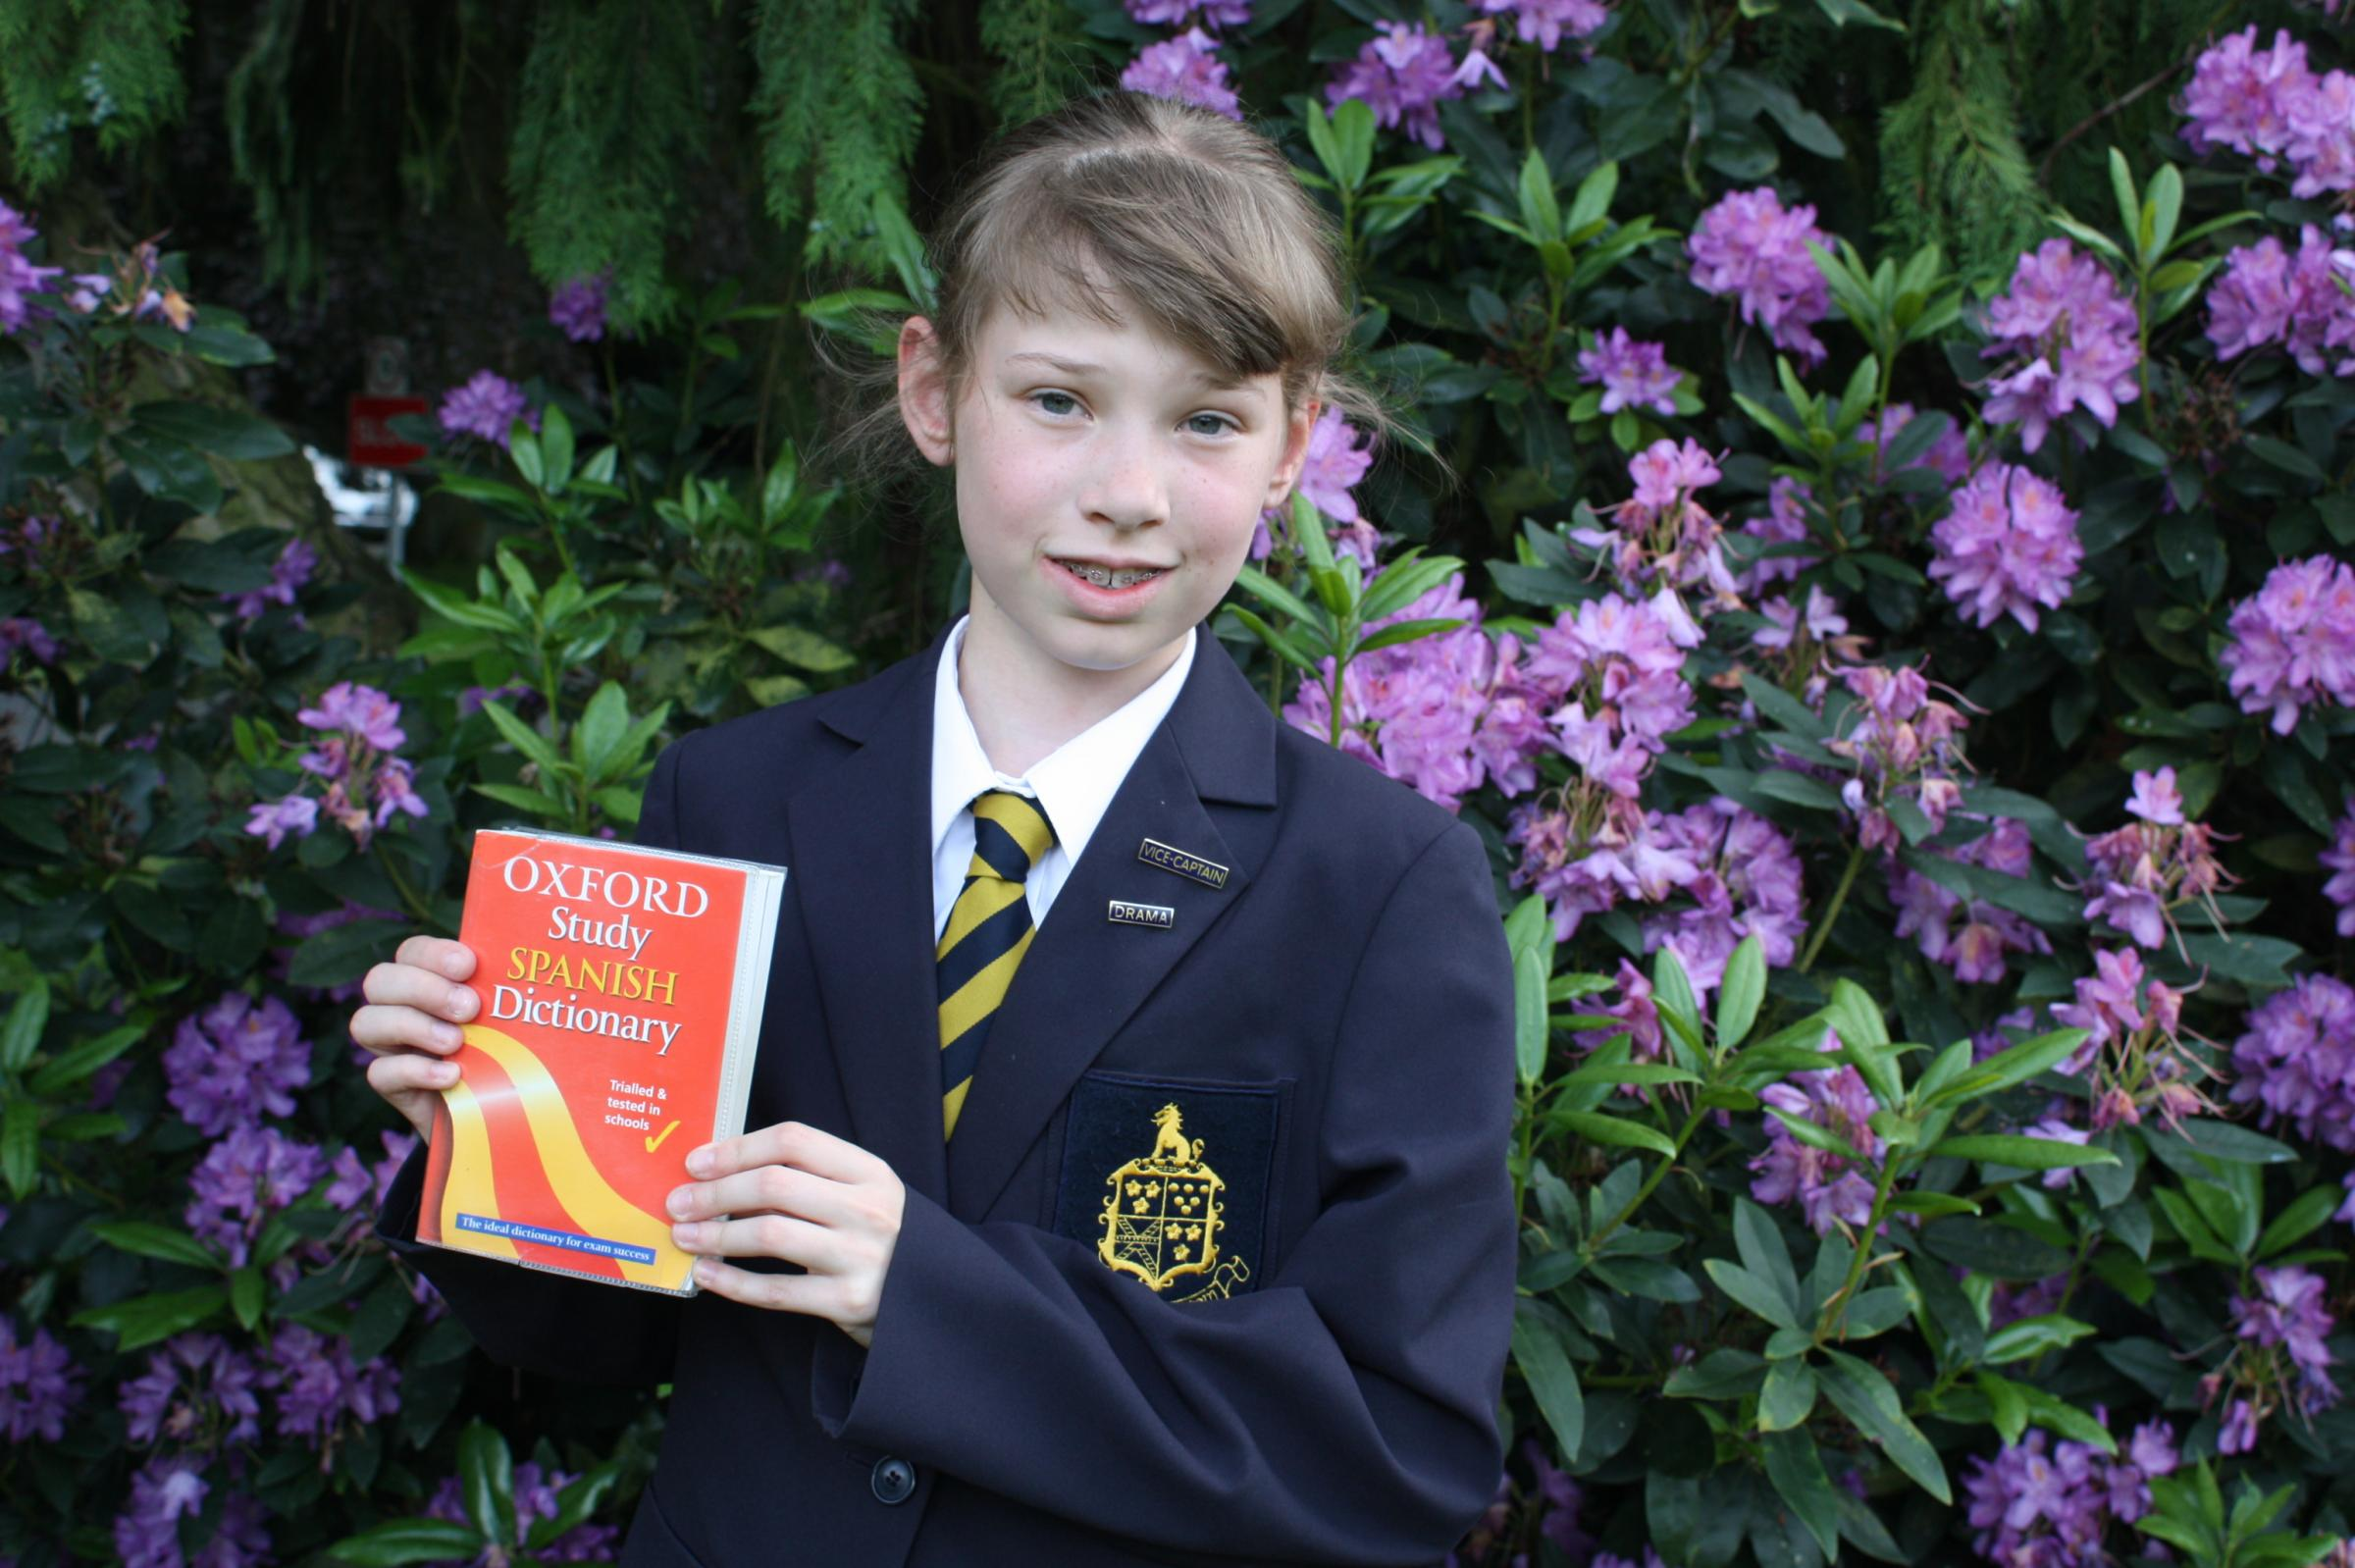 TALENTED LINGUIST: Charlotte Bardsley, 12, has reached the national final of a spelling bee.